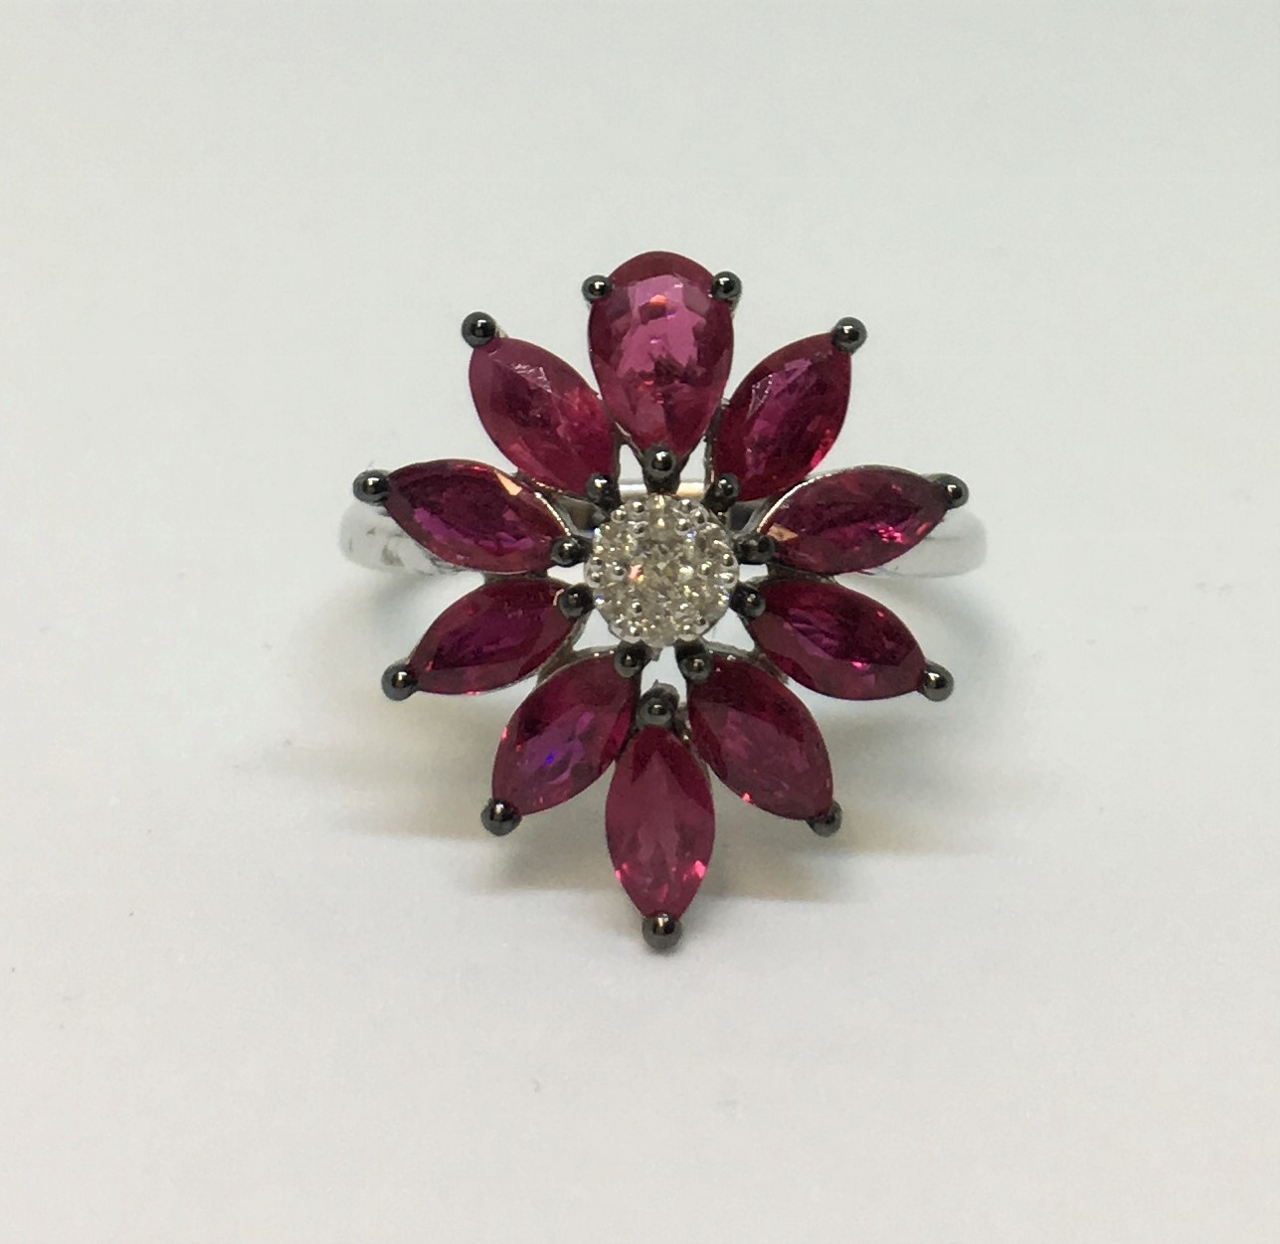 2.60 Carats Total Weight Ruby Ring